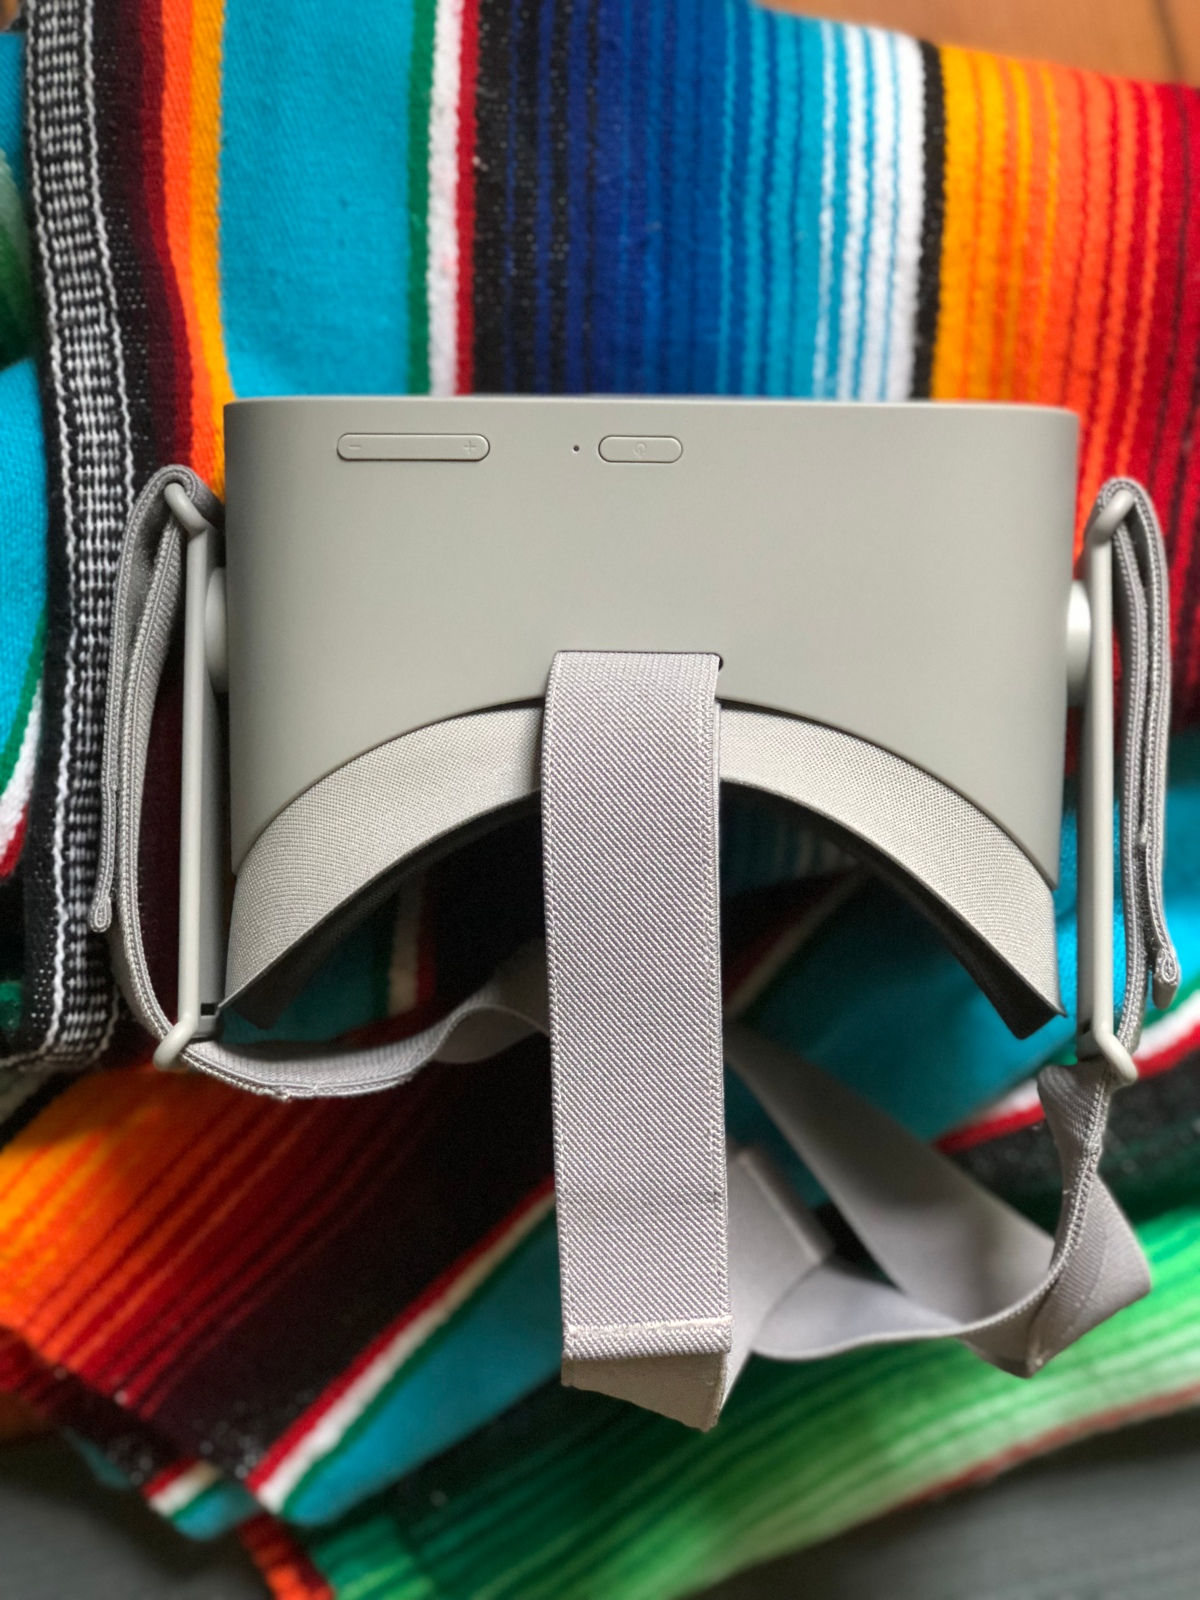 Design Iteration for Oculus Go | The Latent Element